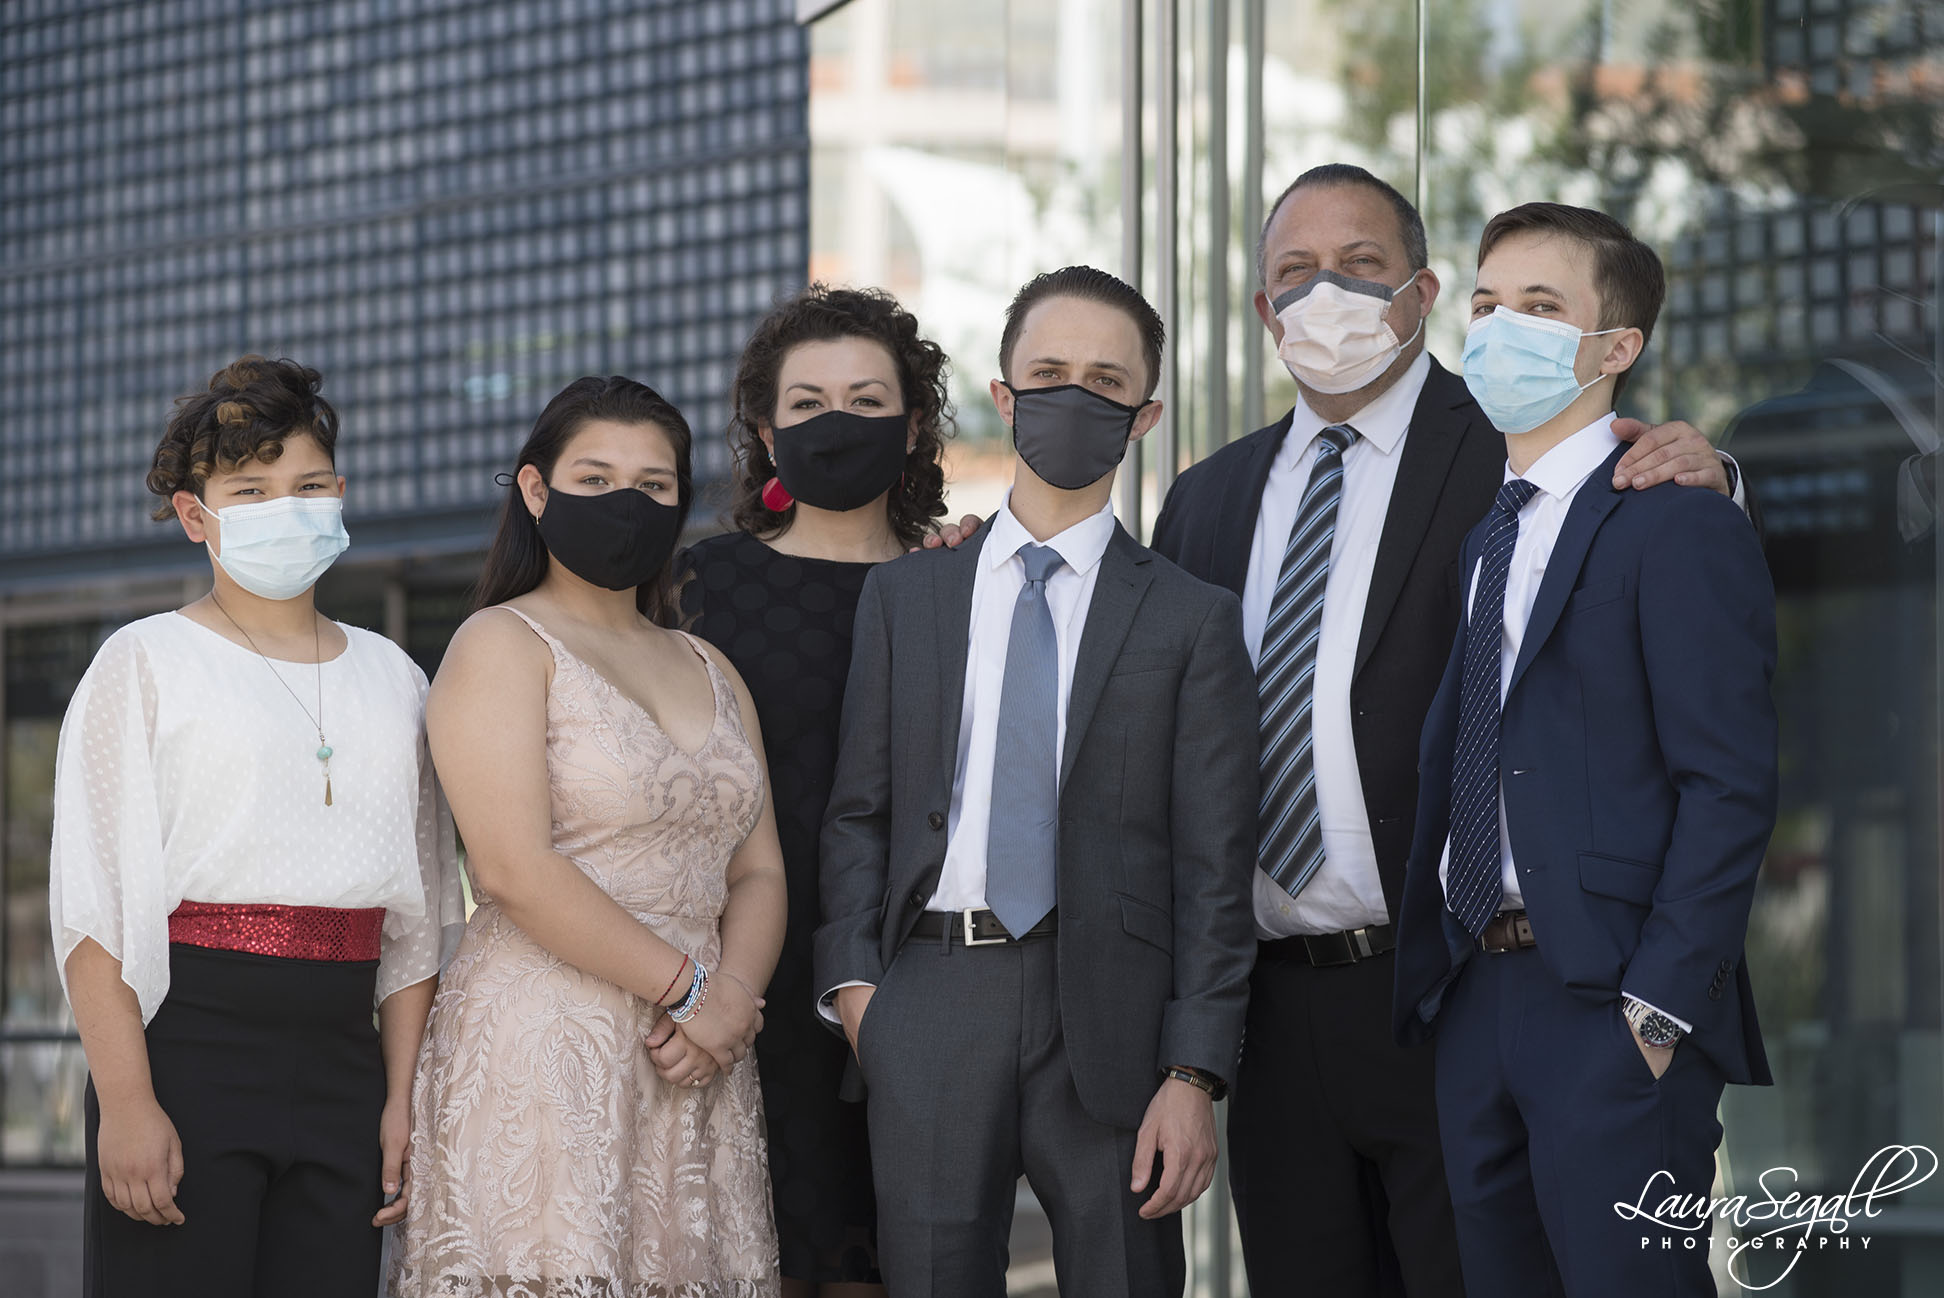 Pandemic family photos with masks